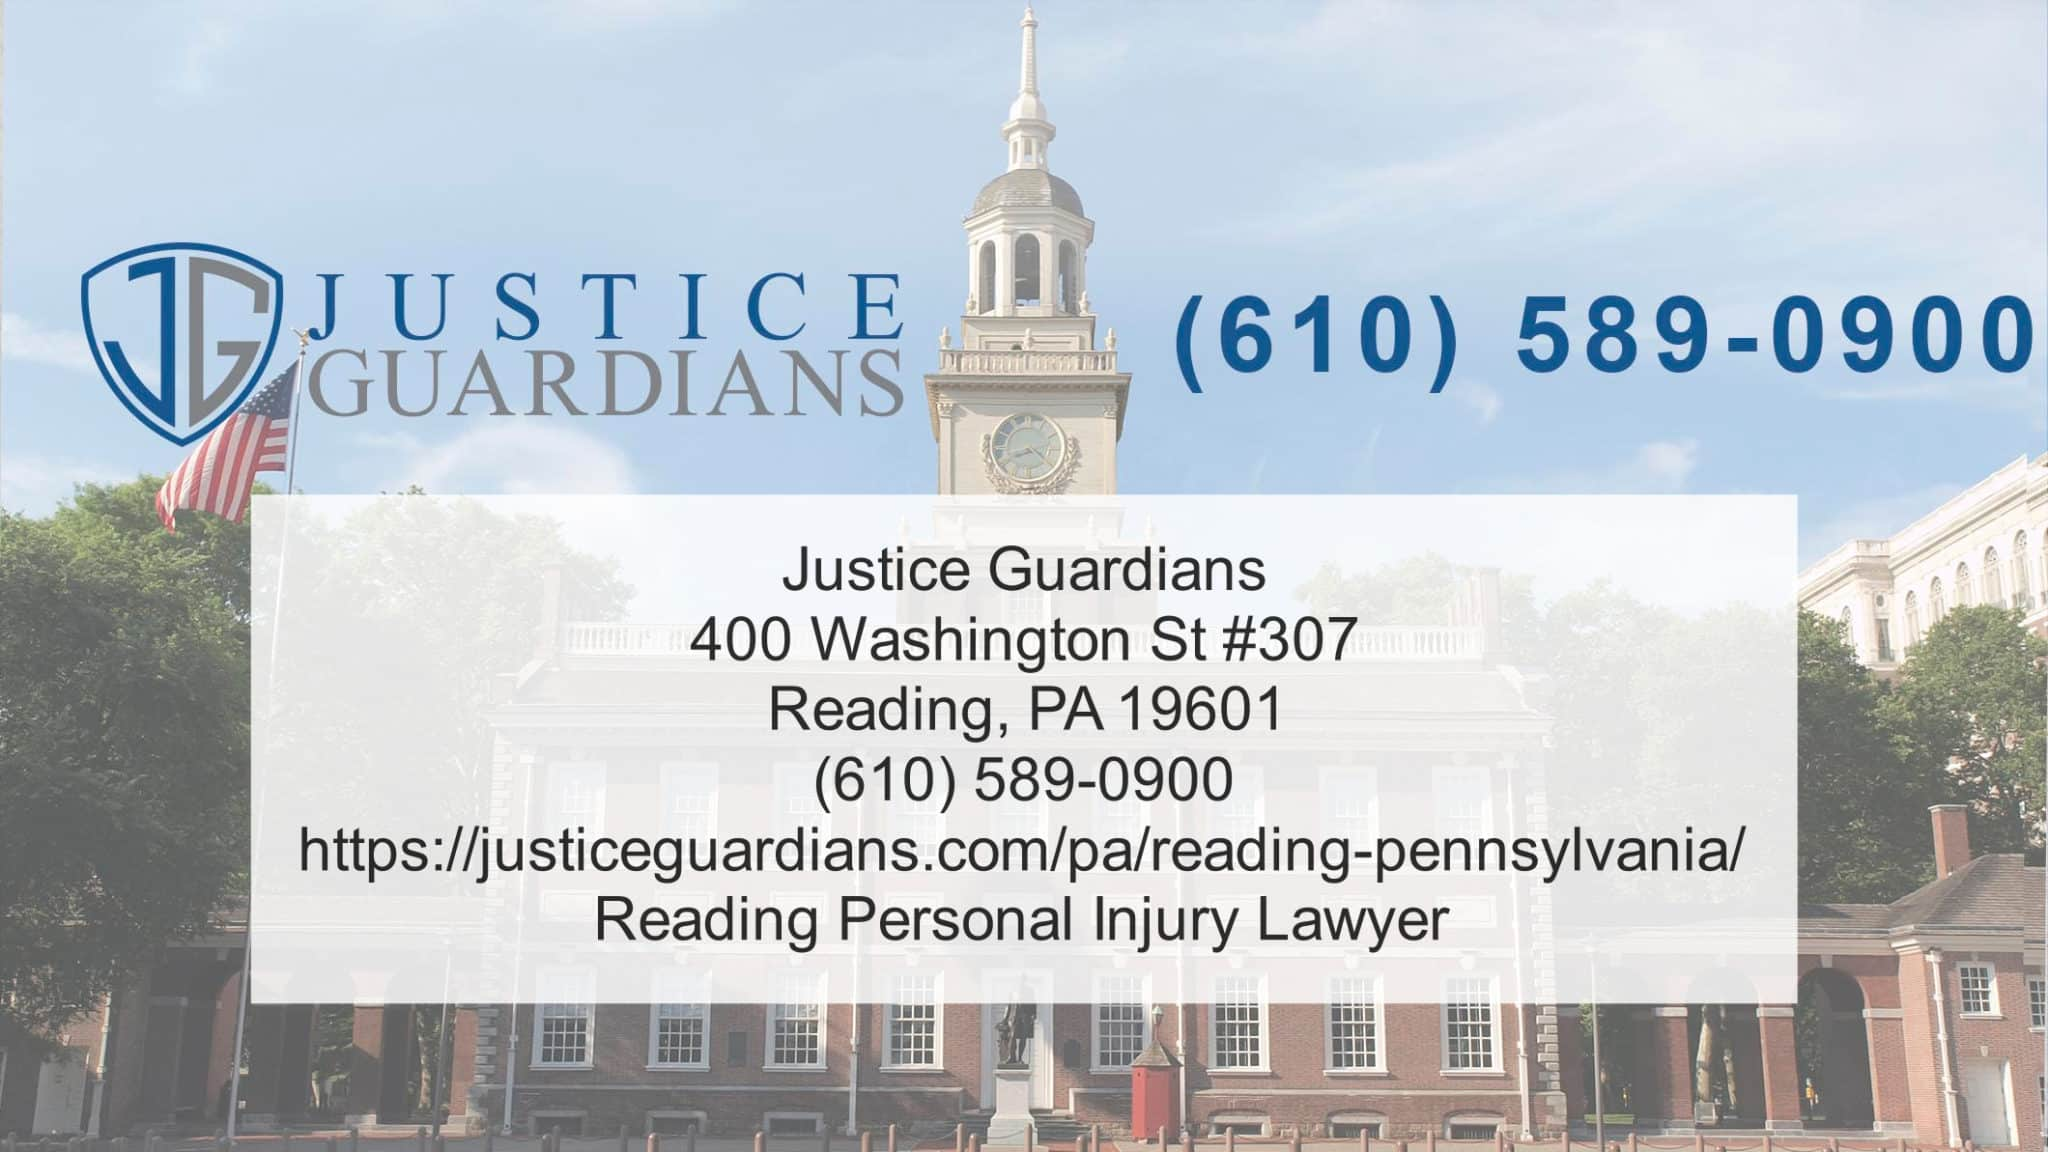 Justice Guardians Law Office